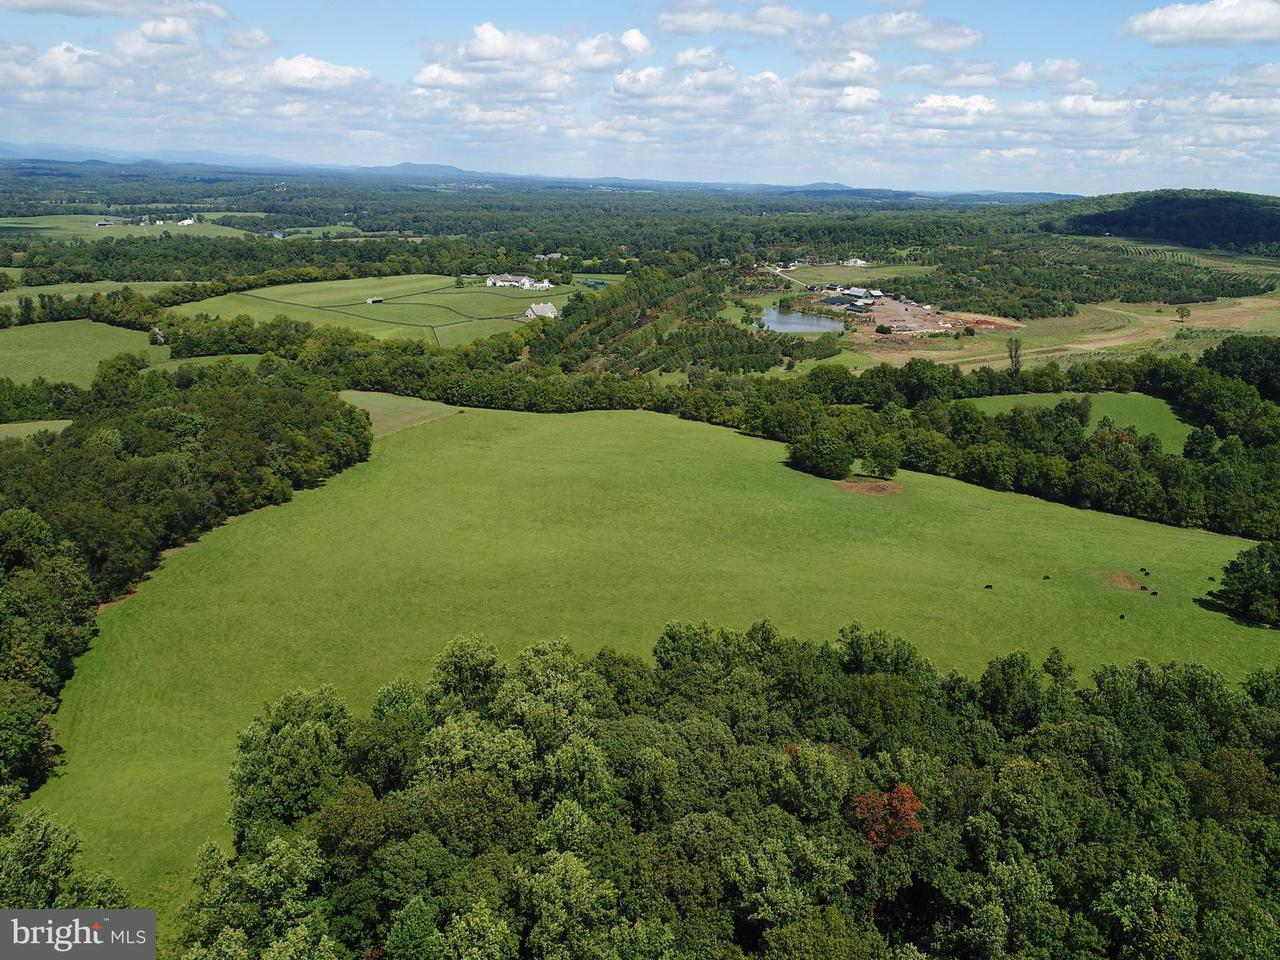 Land for Sale at 10072 Elijah Craig Rd Gordonsville, Virginia 22942 United States